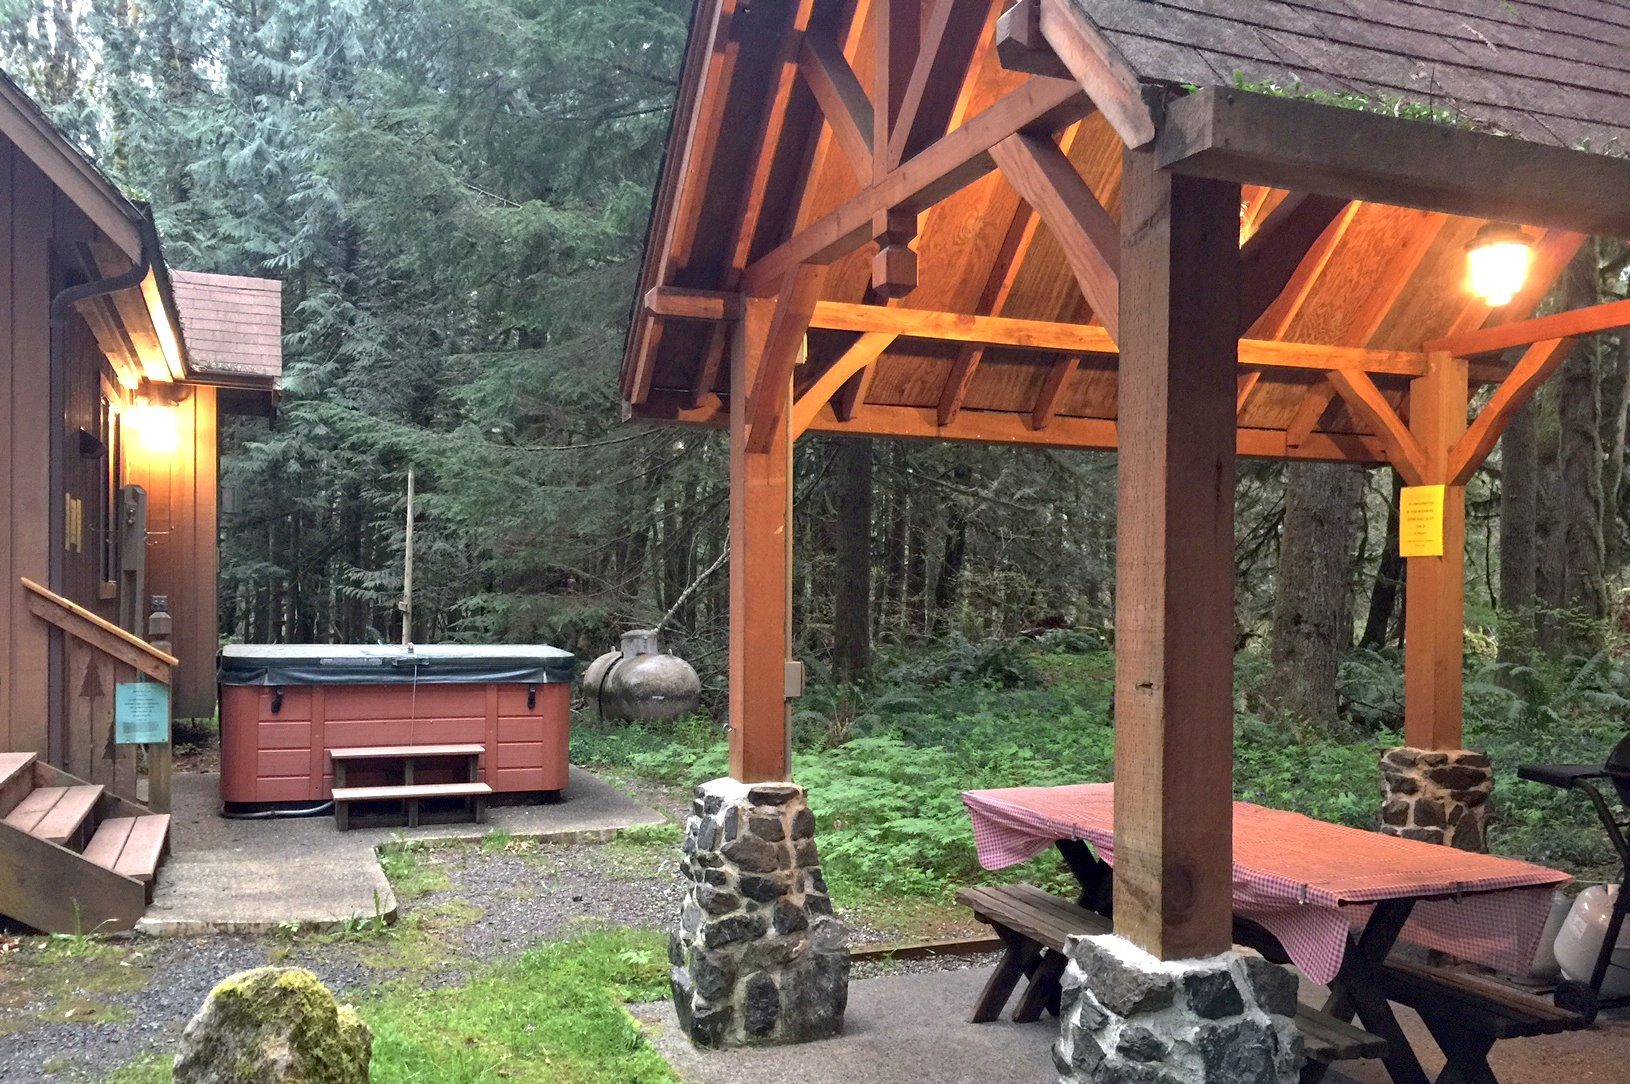 Outside with your private hot tub and sheltered picnic table